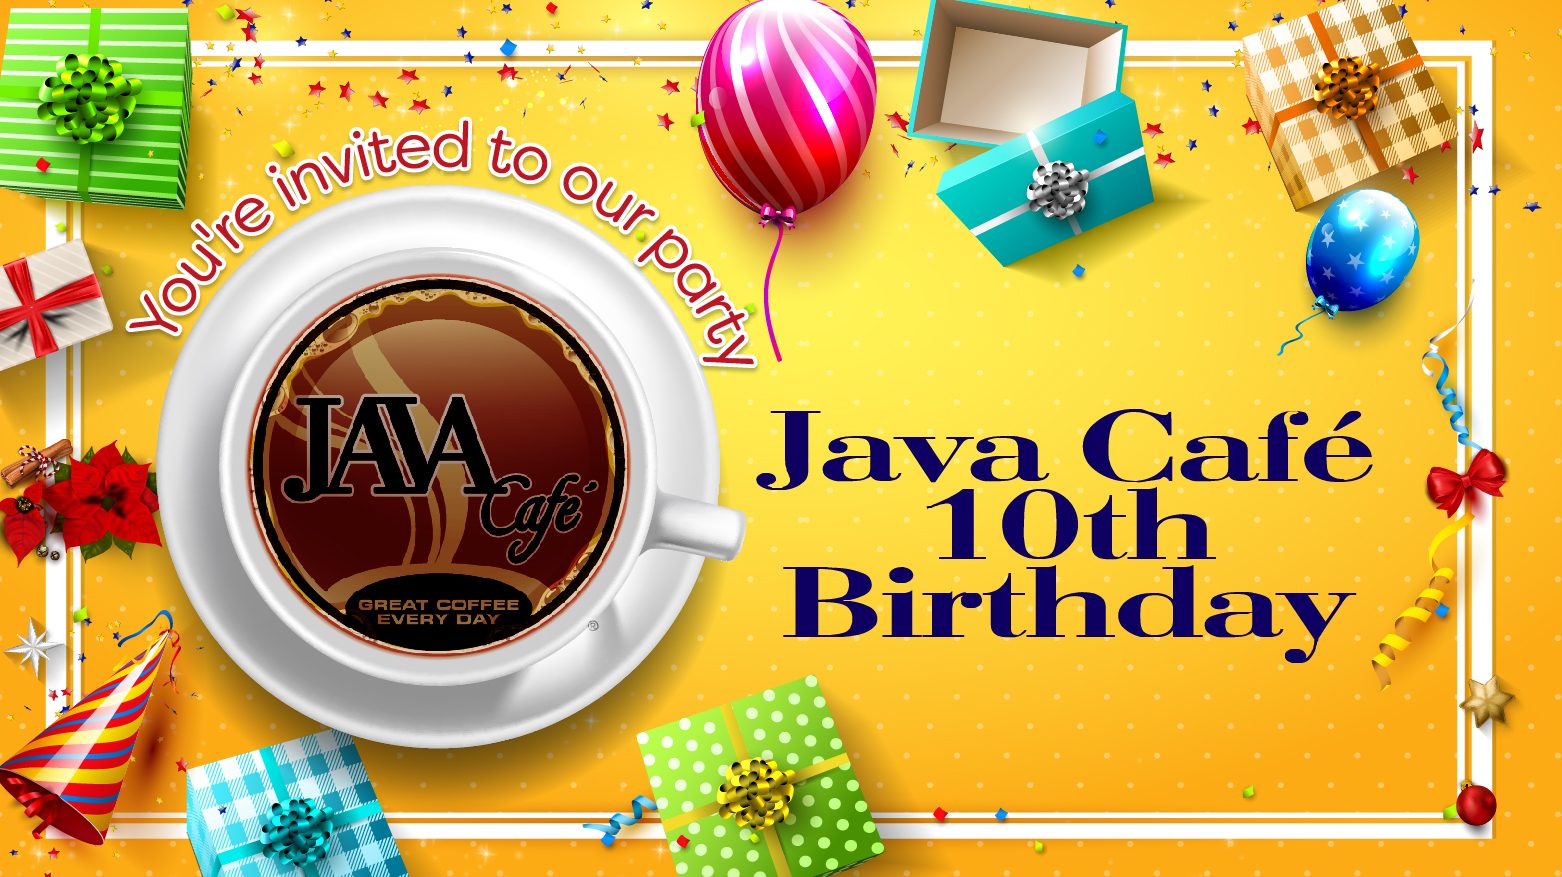 Java Cafe 10th Birthday Party